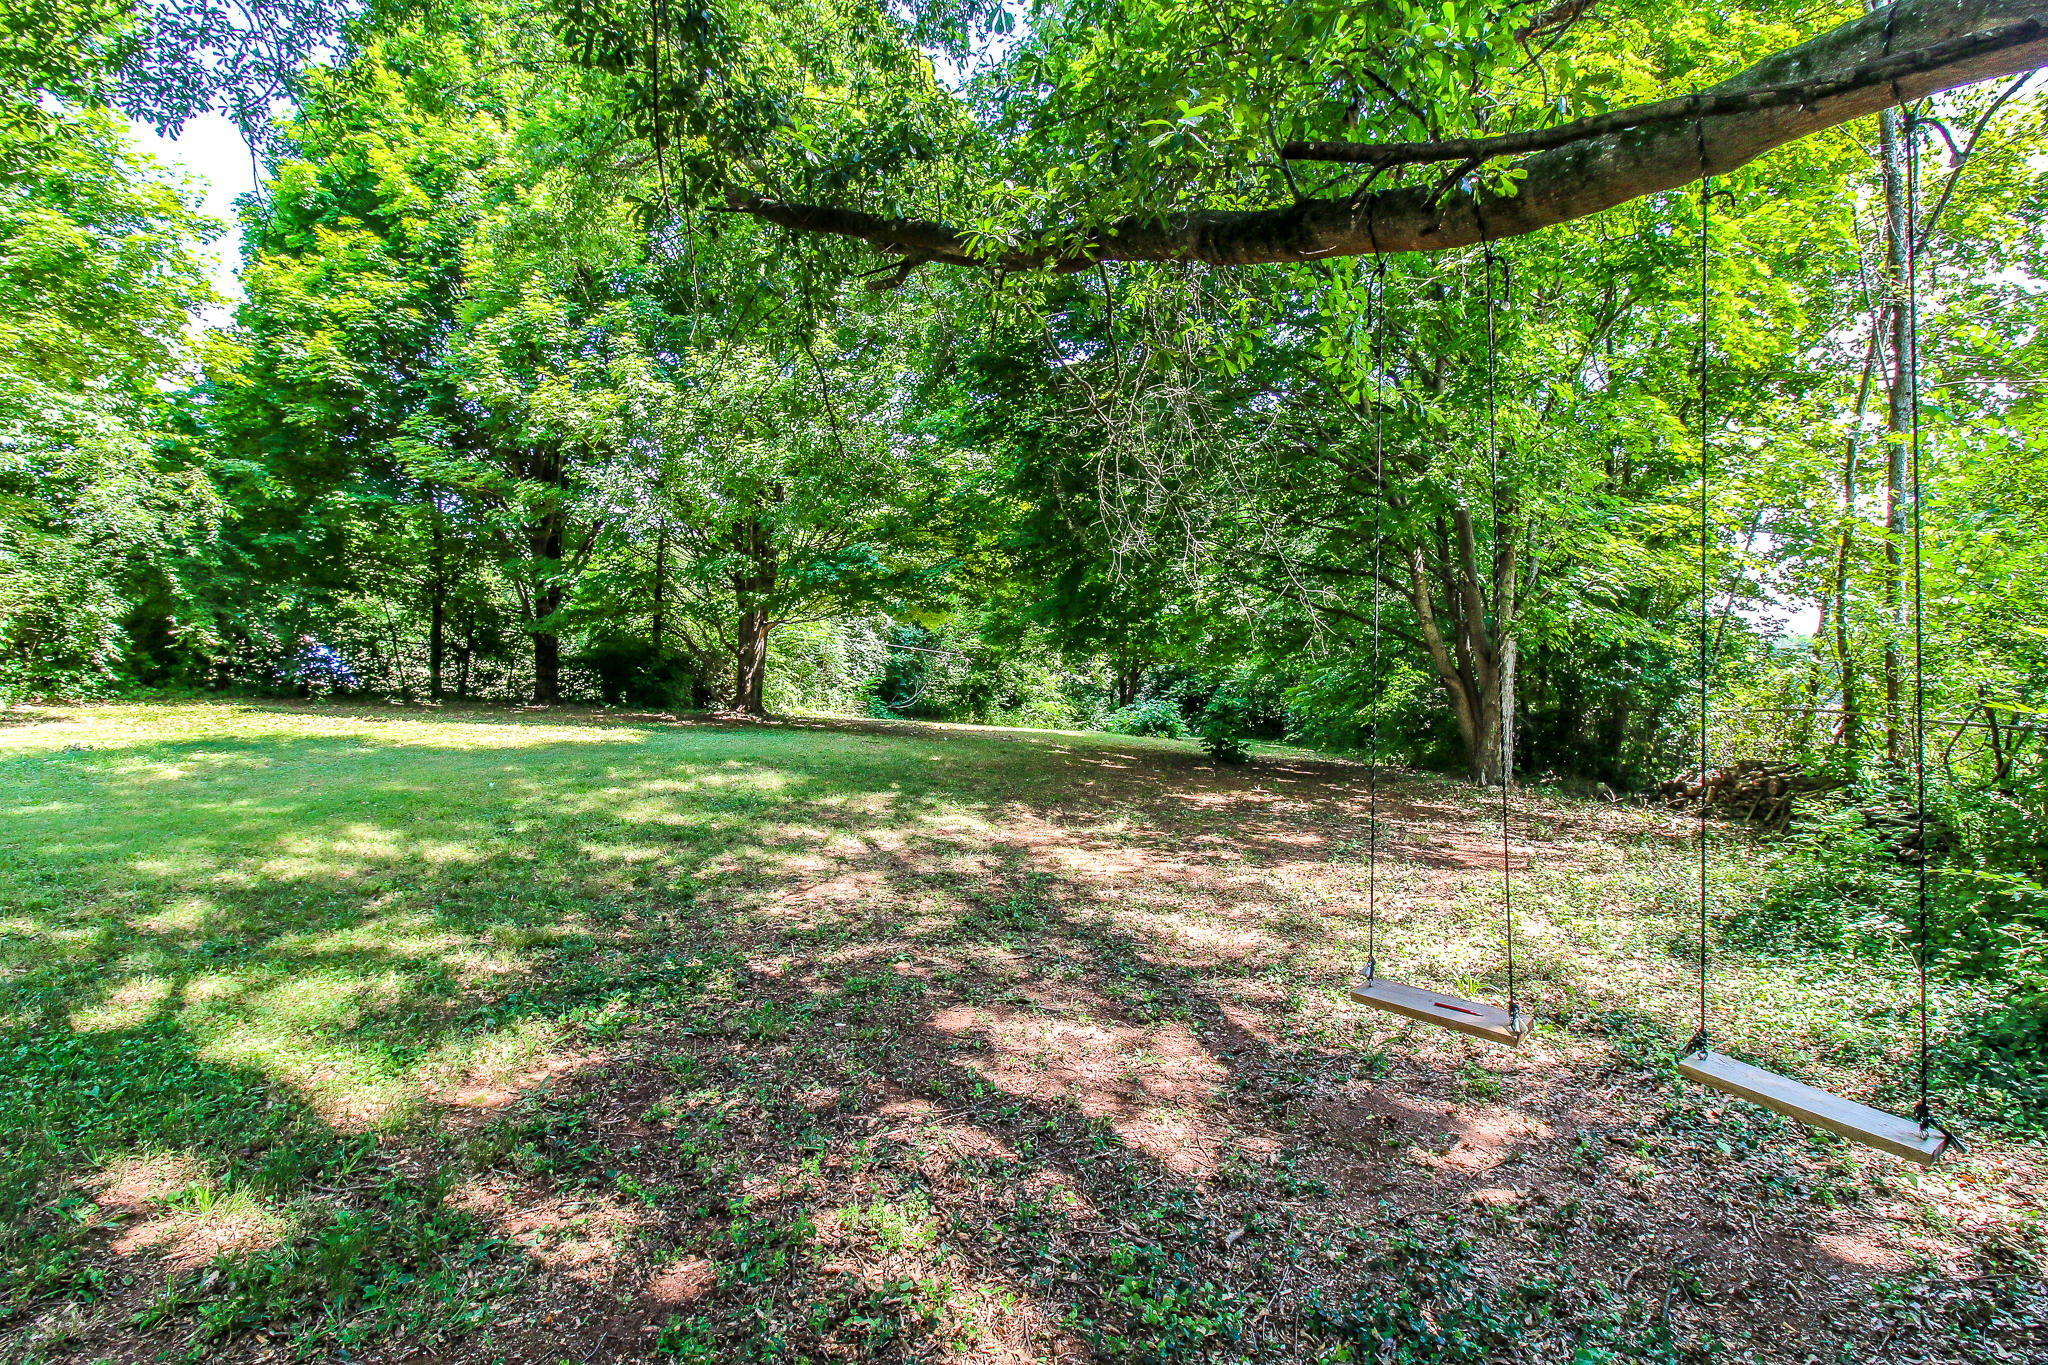 5408 Ridgefield Rd, Knoxville, Tennessee 37912, 4 Bedrooms Bedrooms, ,2 BathroomsBathrooms,Single Family,For Sale,Ridgefield,1082572